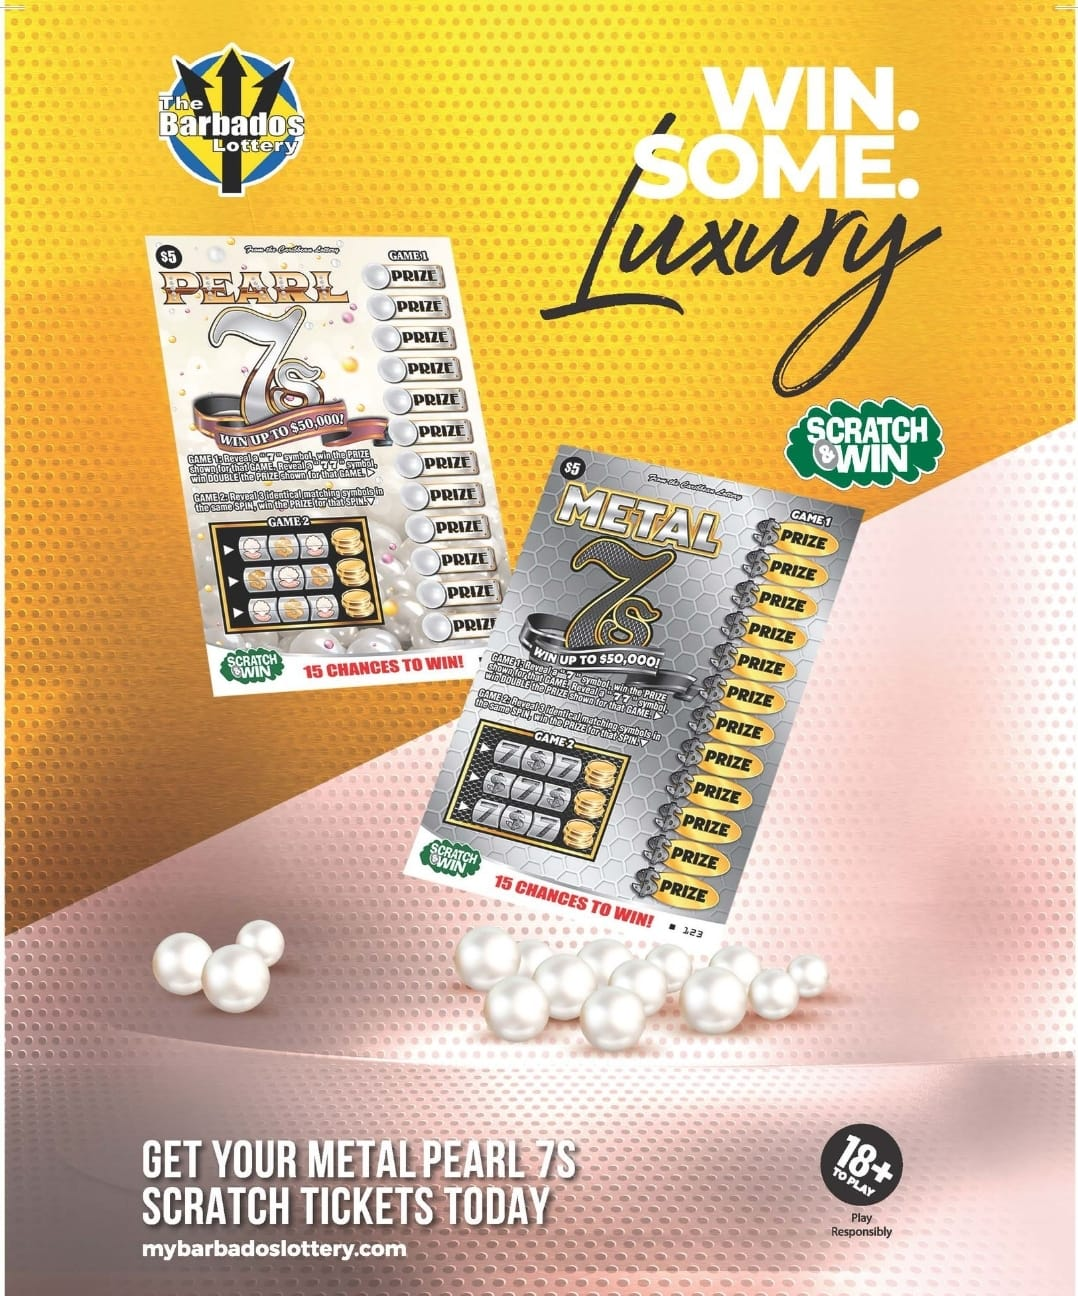 "With the tagline ""Win Some Luxury,"" the quick prizes potentially offer a chance to grab some opportunity and comfort in what has been a challenging year for many. When players purchase a ticket, they will see the Metal or Pearl sides of the game alternatively stacked in the bins at the cashier. For just $5, a player can potentially net a high amount of prizes from one ticket, and with retailers being able to cash up to BDS$750 per ticket, each player can benefit from some quick and easy wins on the spot."